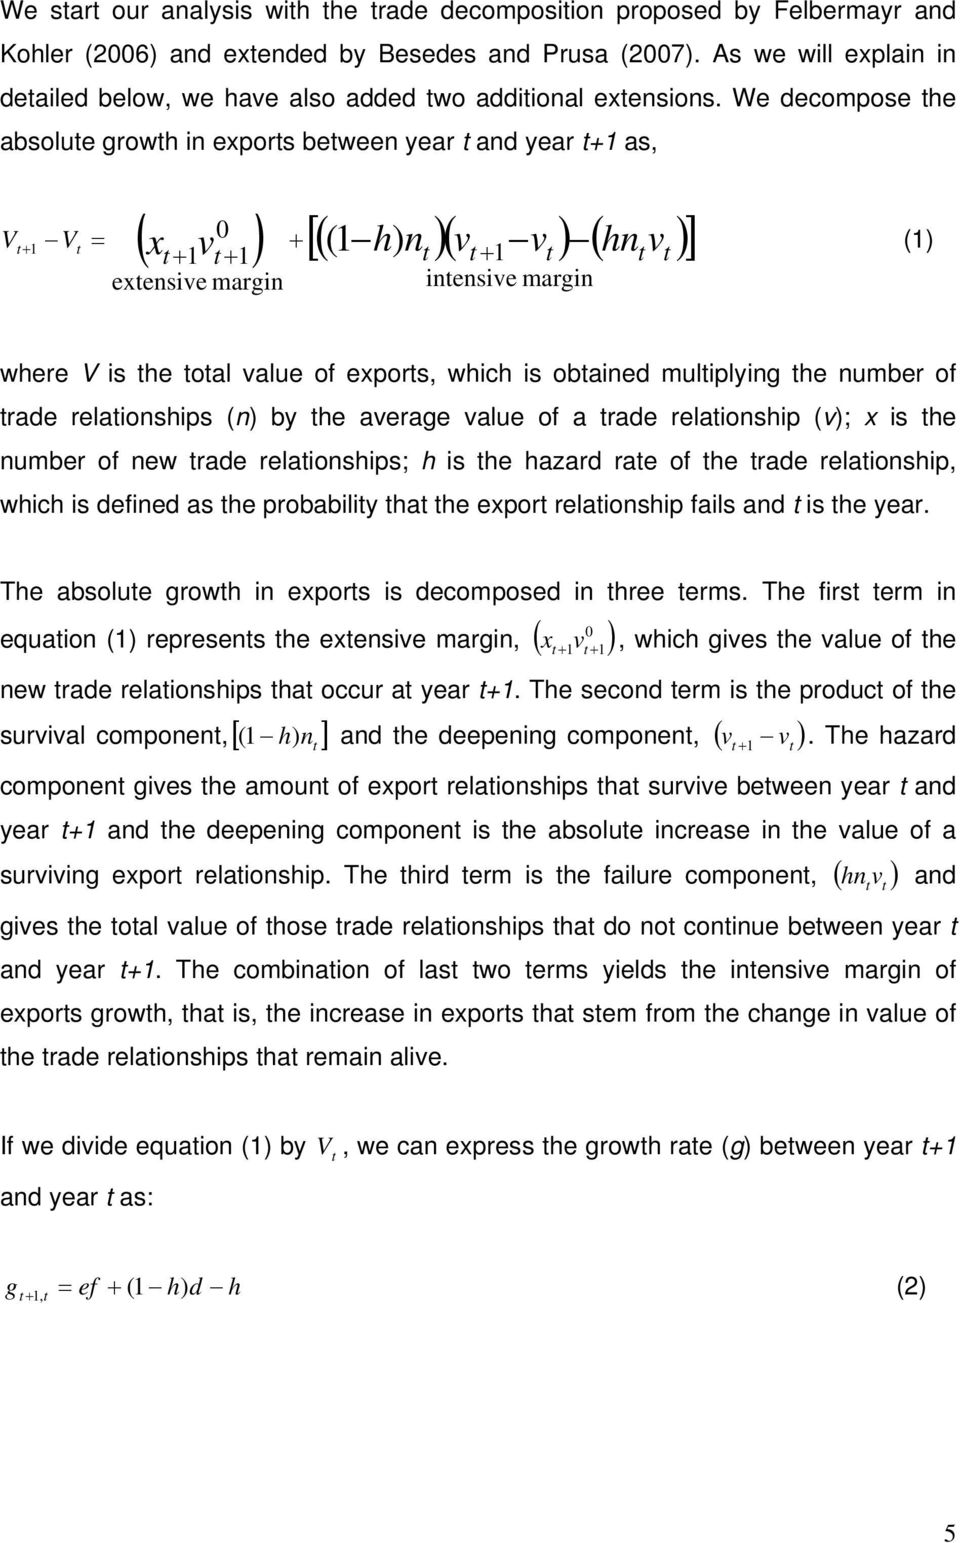 We decompose the absolute growth in exports between year t and year t+1 as, 0 x v ( 1h) nt v t 1vt hntv Vt V 1 t t 1 t 1 t (1) extensive margin intensive margin where V is the total value of exports,